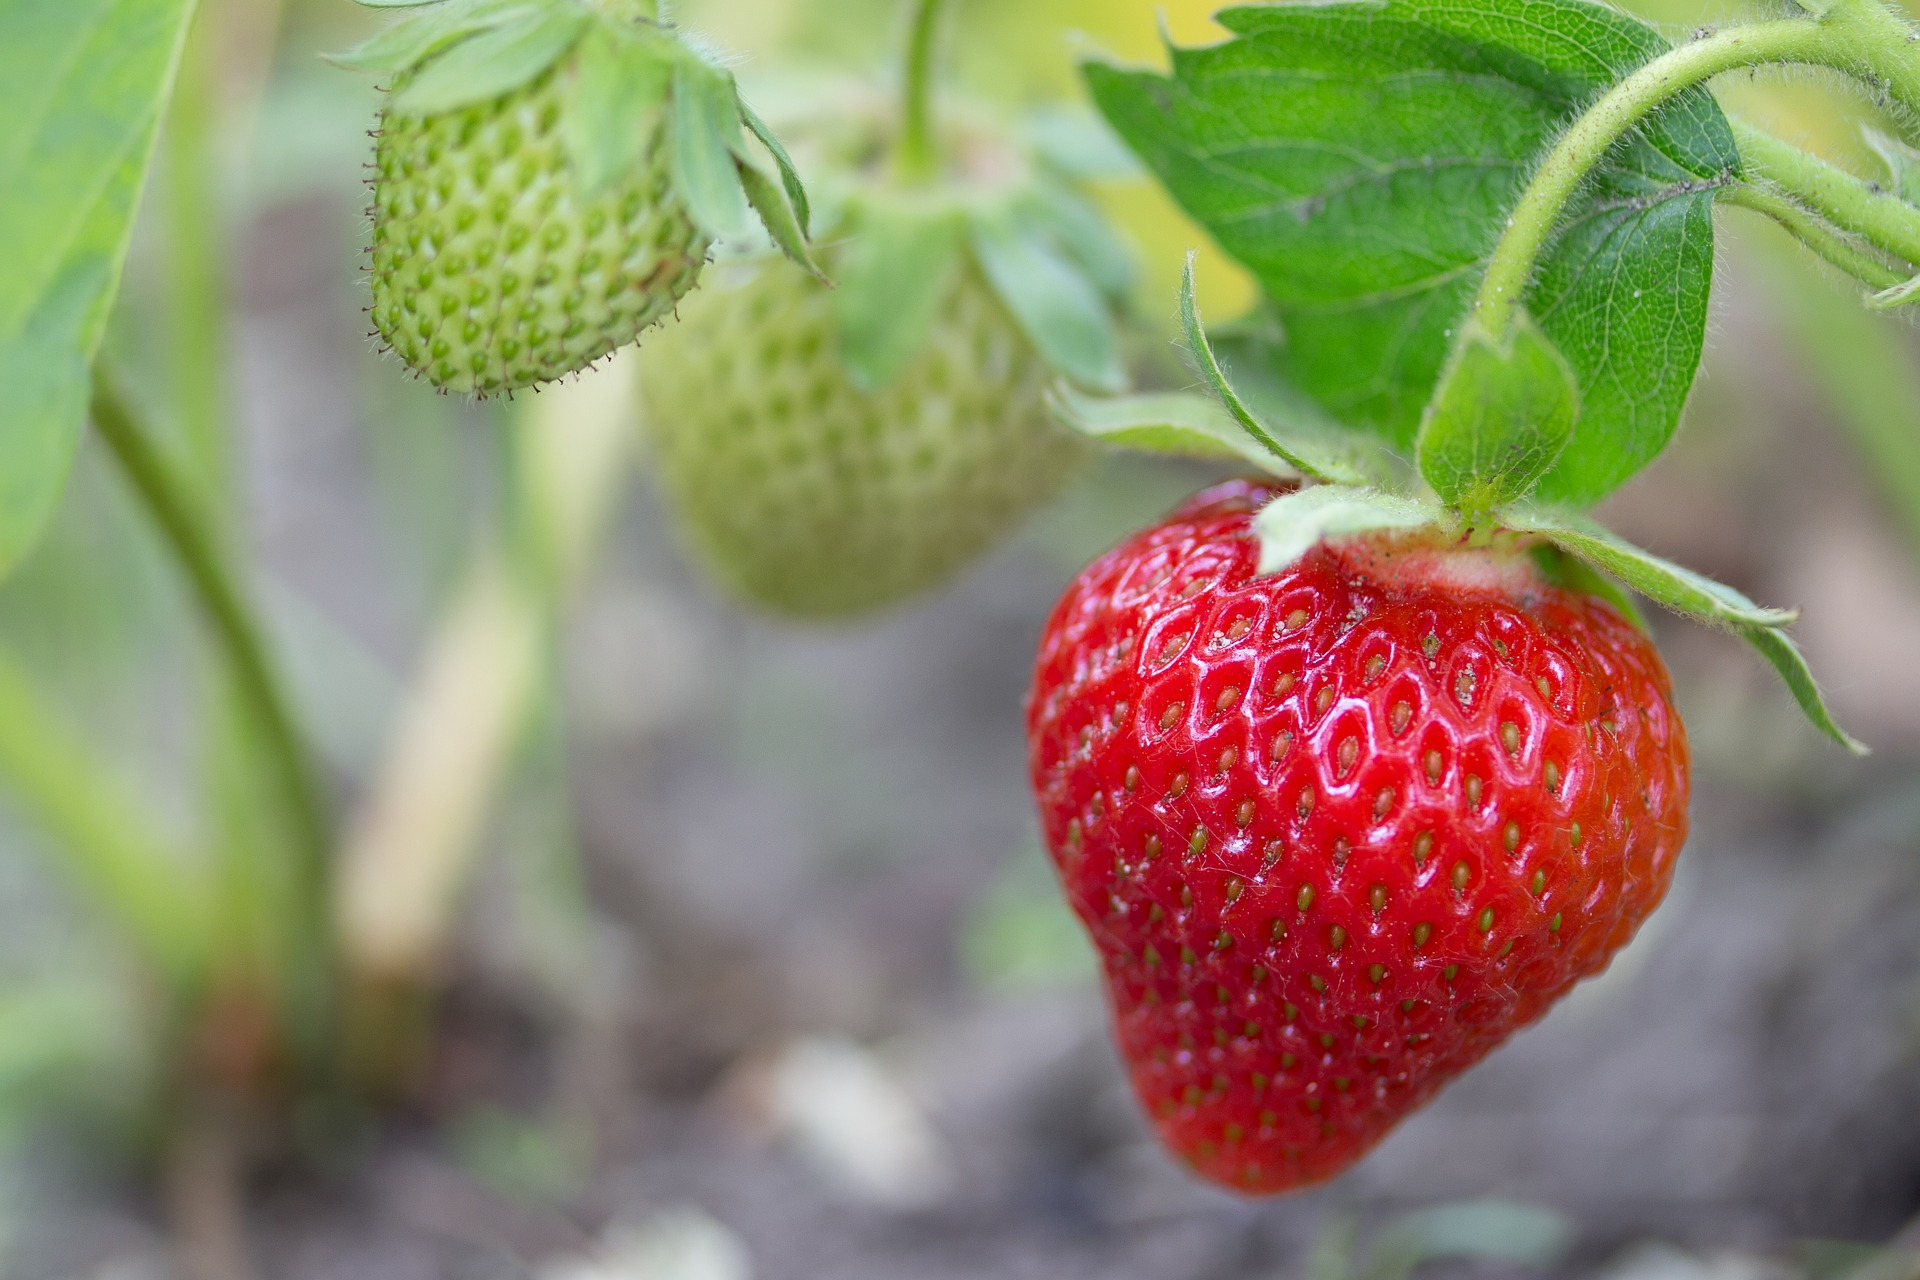 Strawberries - setting up a test location